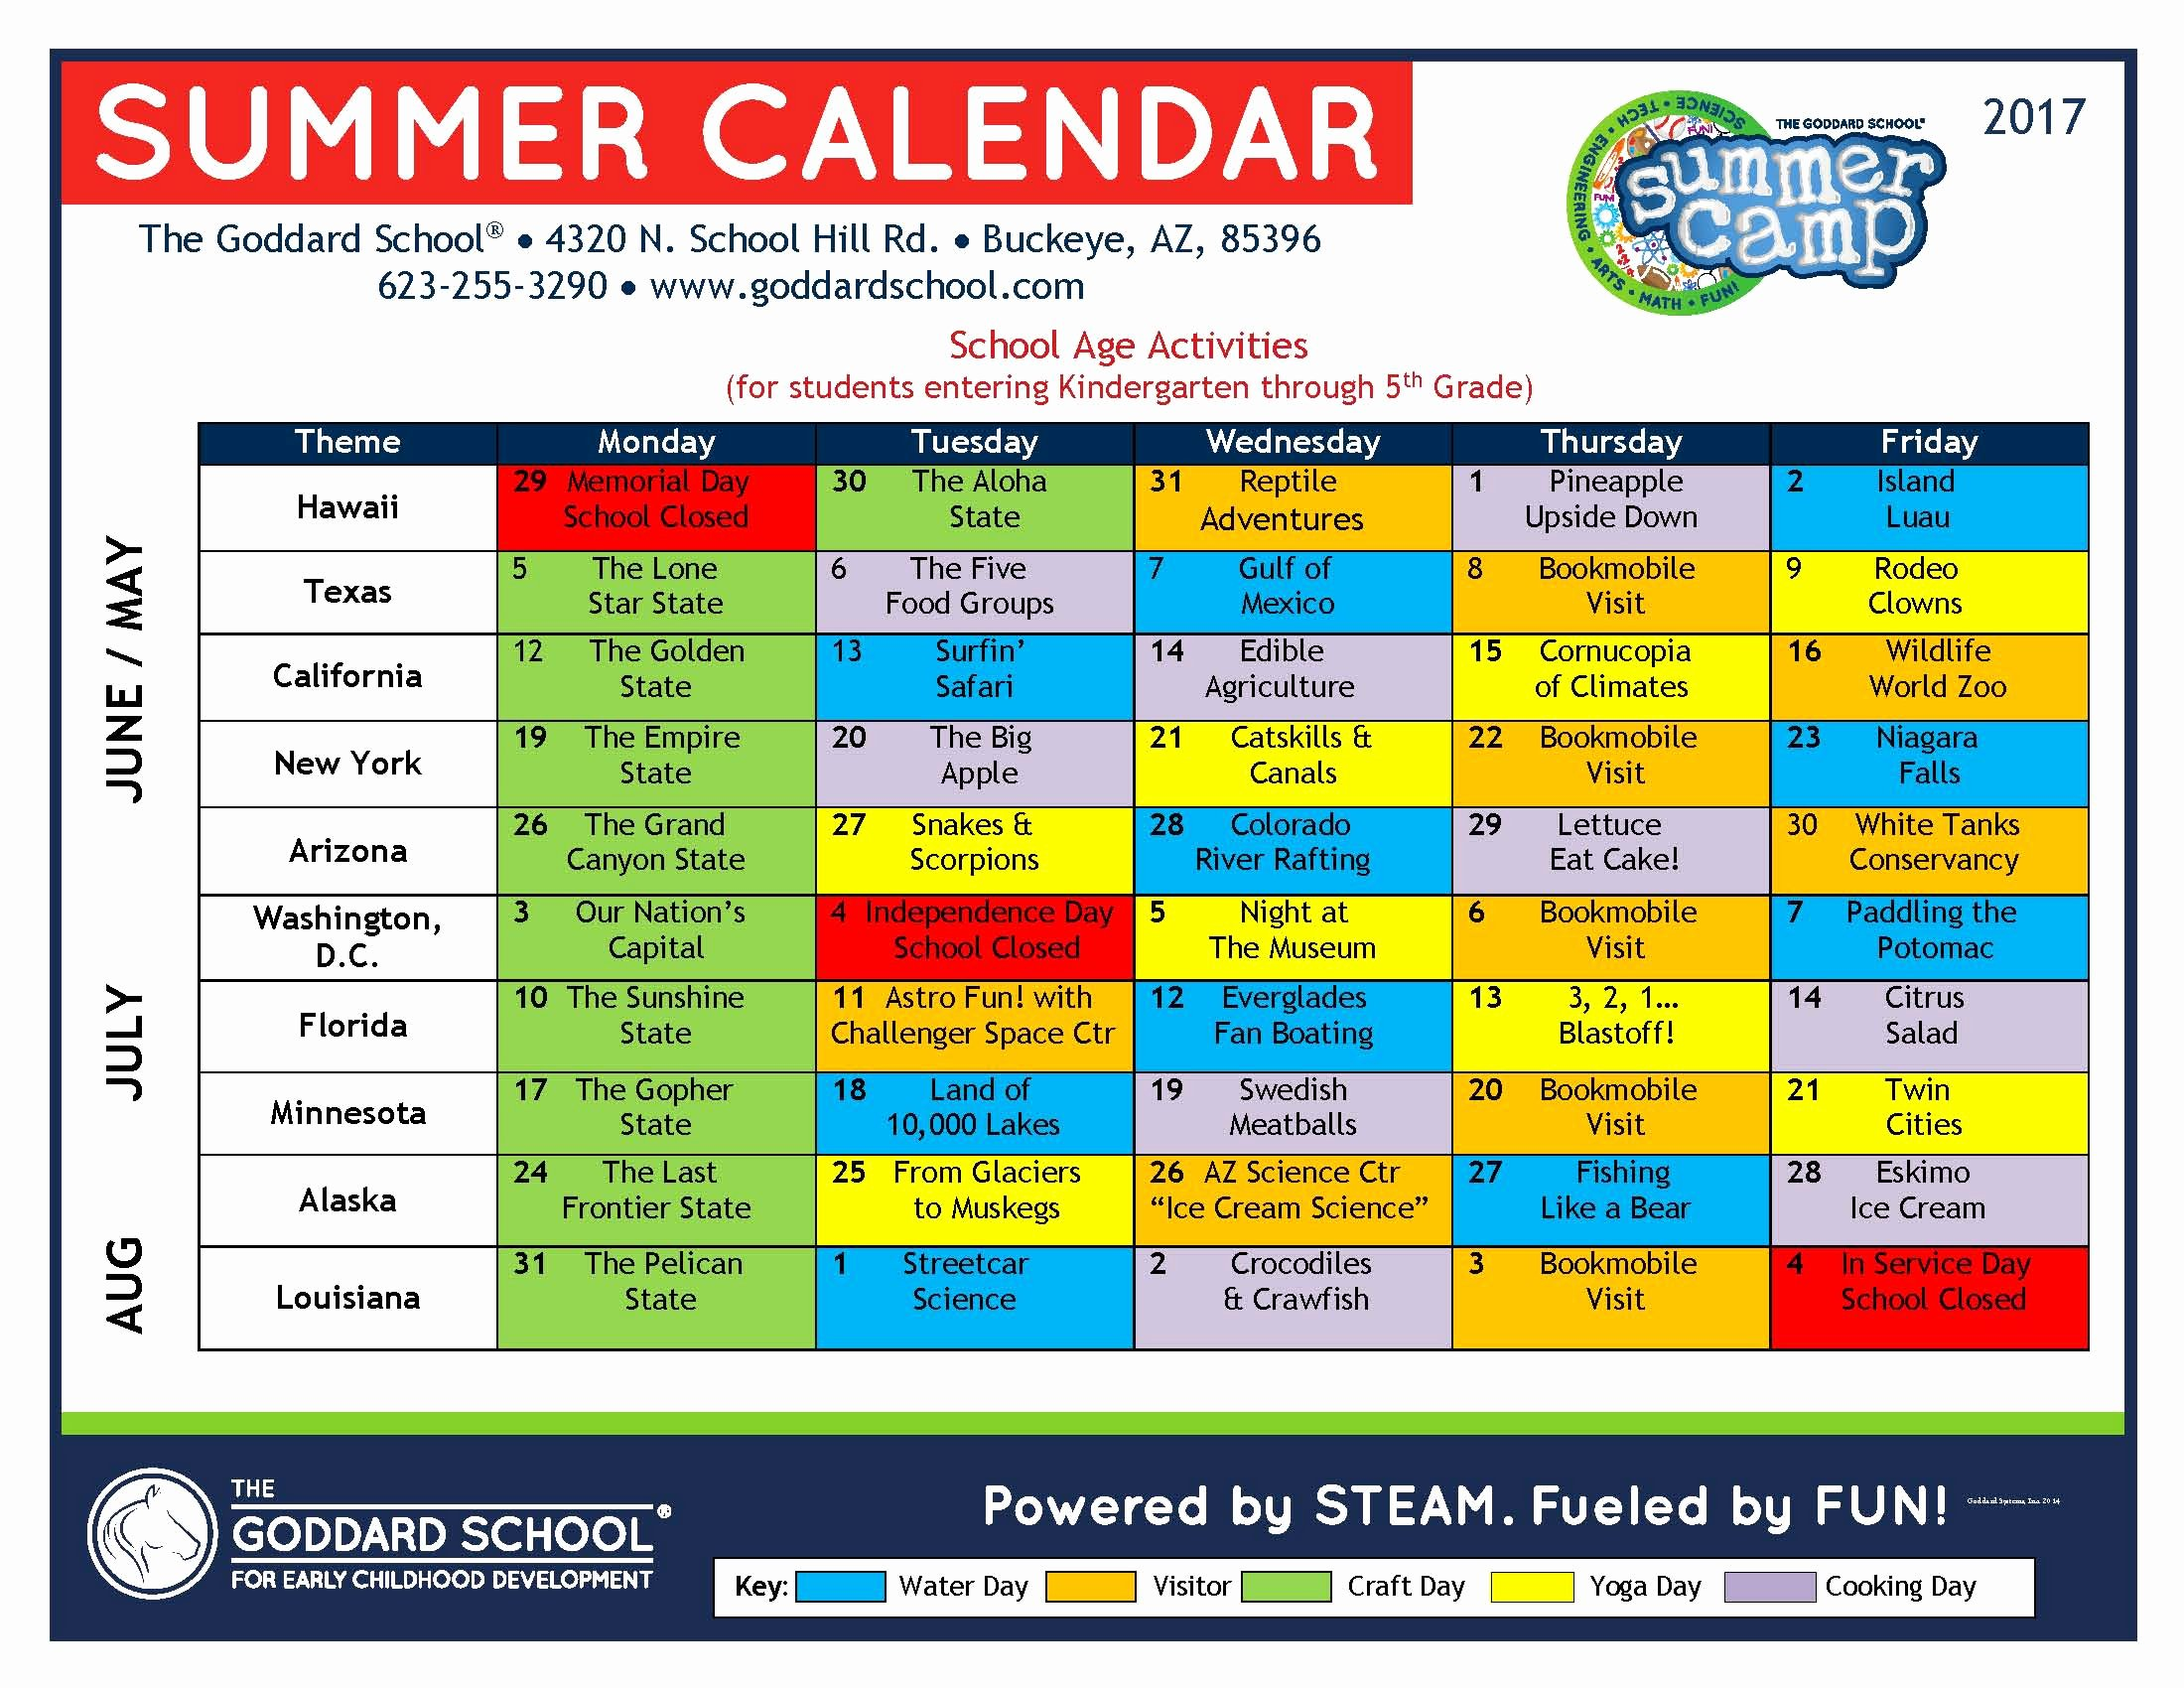 Summer Camp Schedule Templates Fresh Summer Camp Buckeye